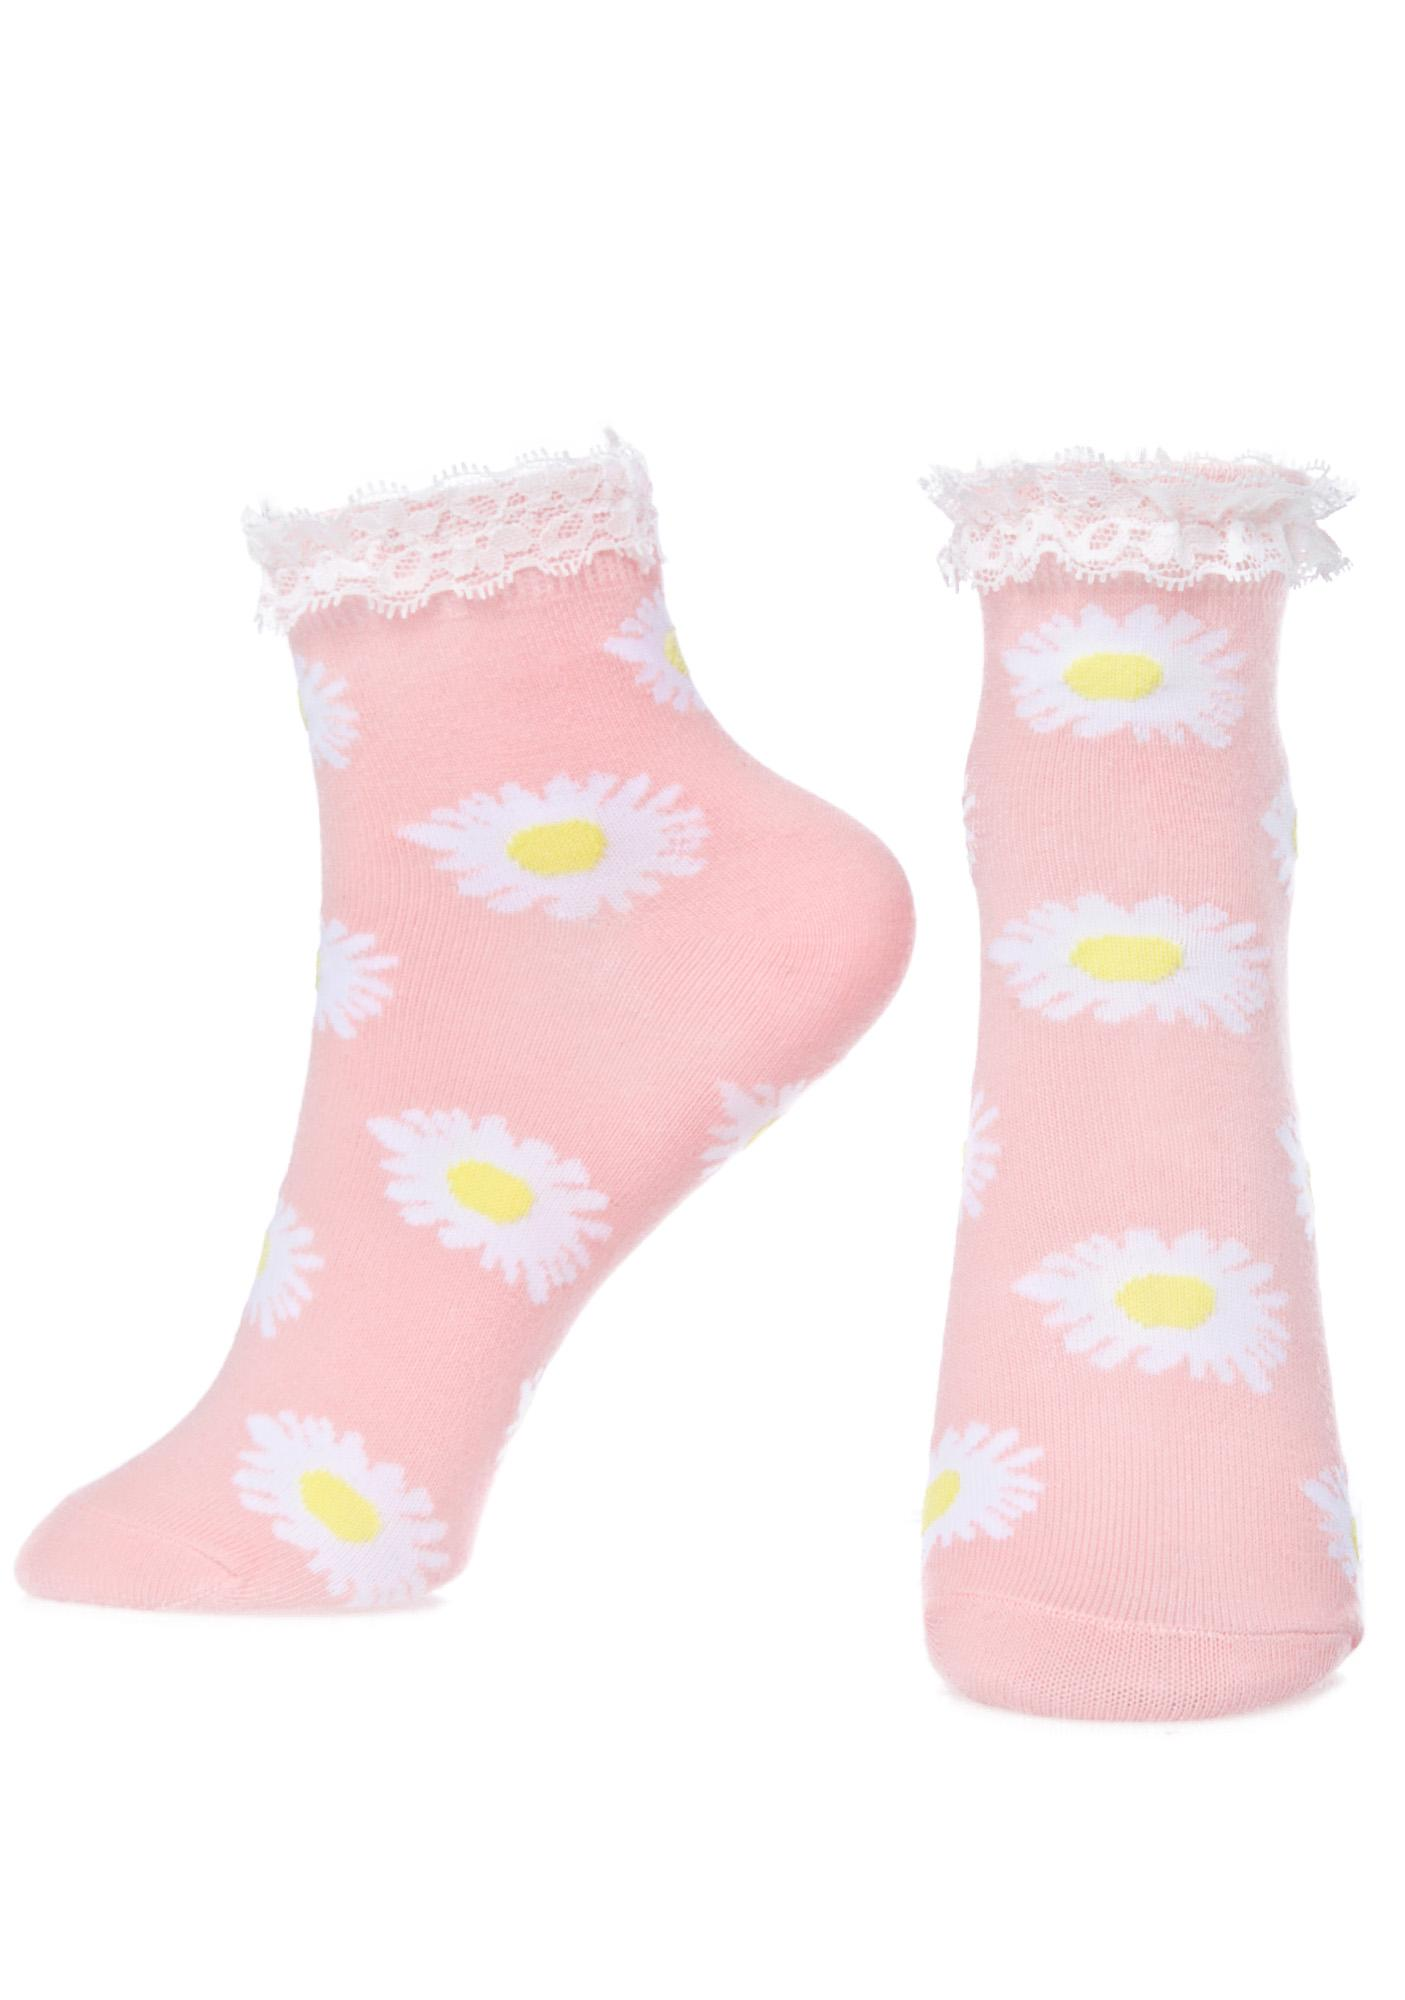 Daisy Fields Socks